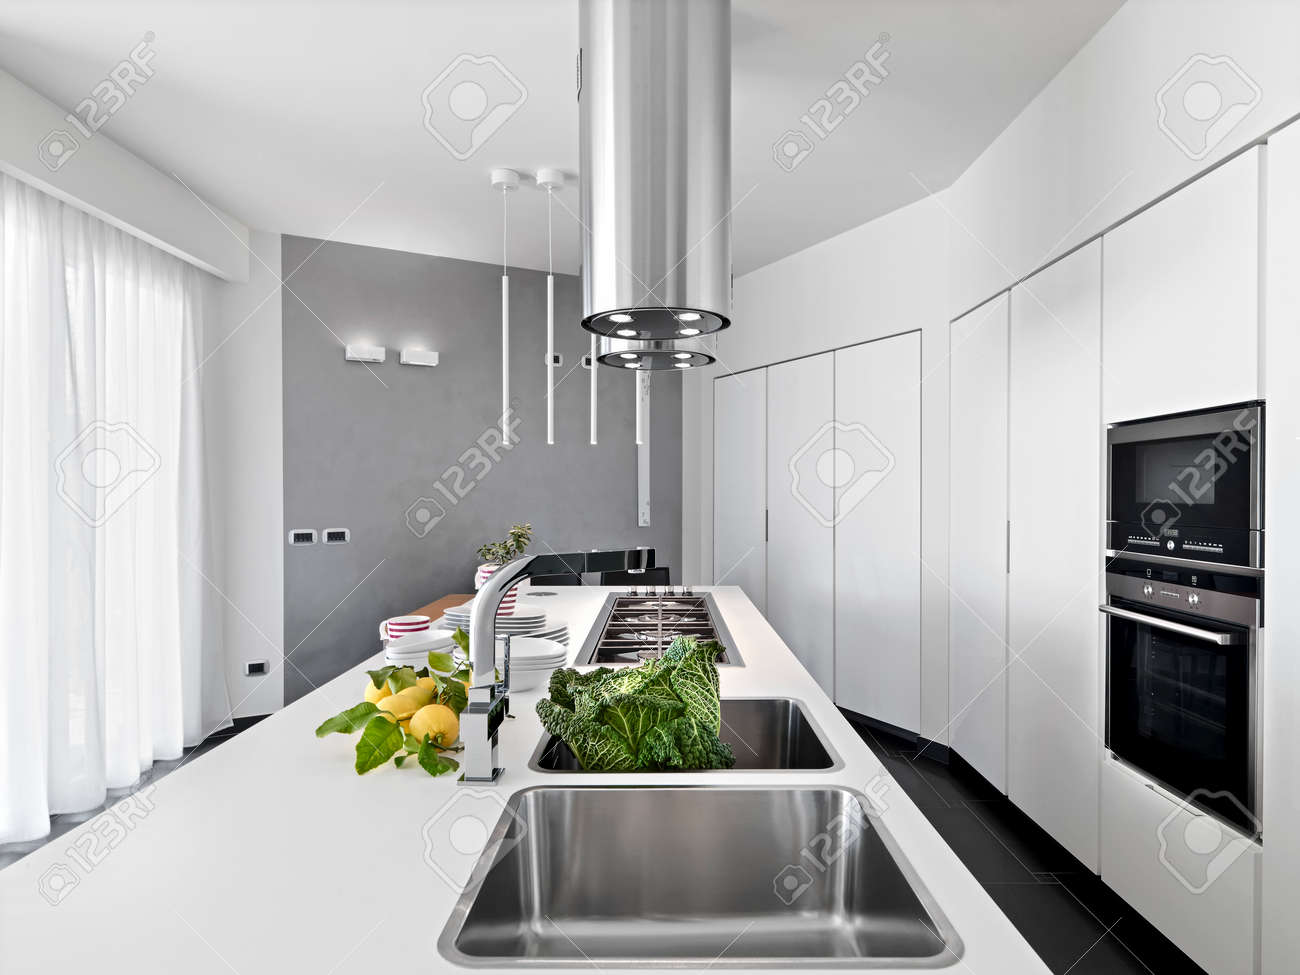 internal view of a modern kitchen in foreground still sink with vegetable and lemons on the worktop Standard-Bild - 50767127